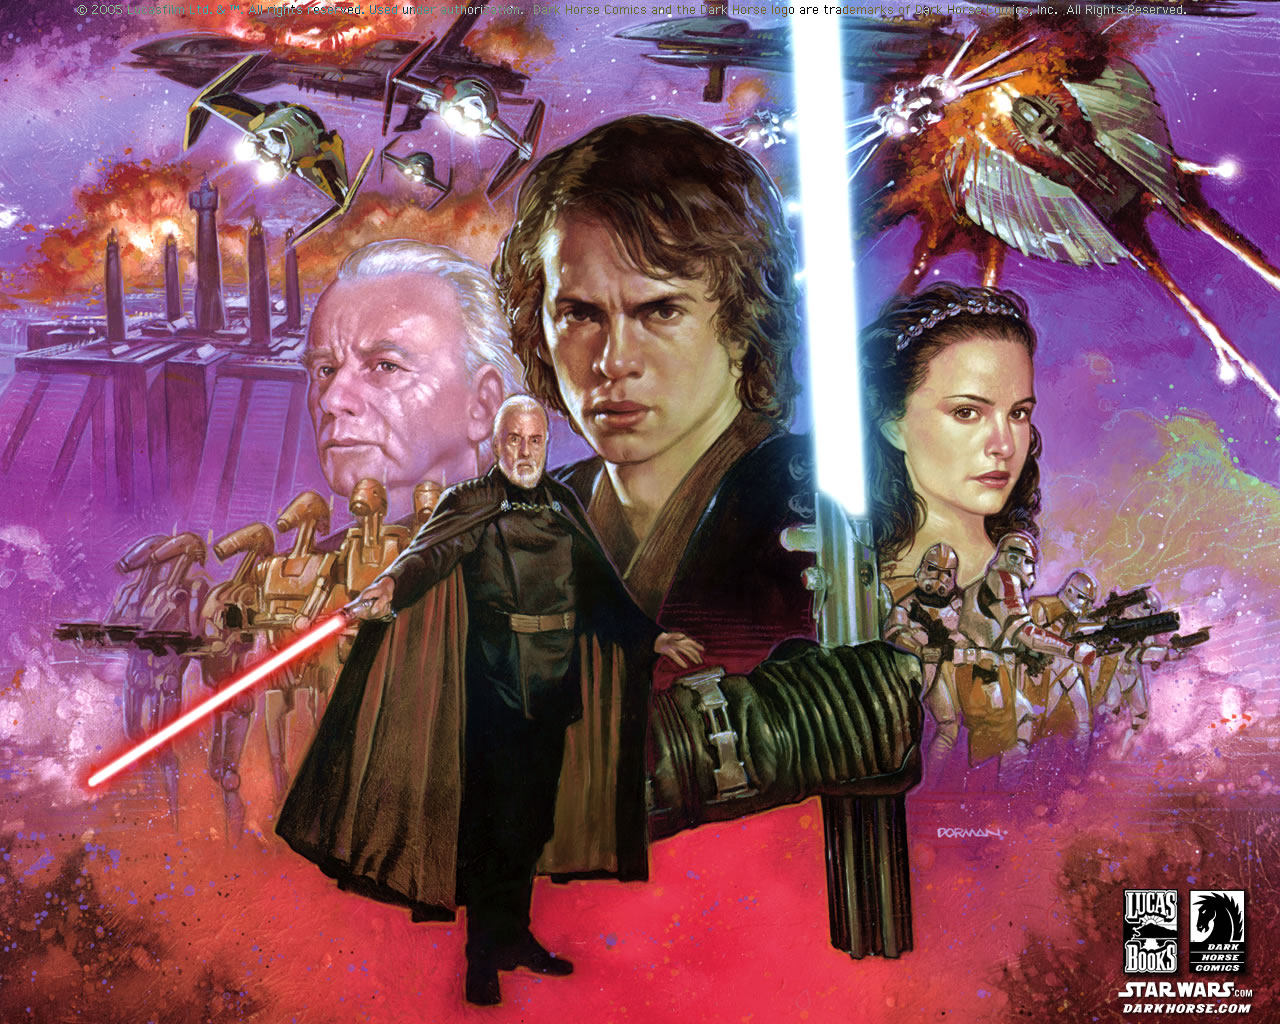 Revenge Of The Sith Star Wars Revenge Of The Sith Wallpaper 23948858 Fanpop